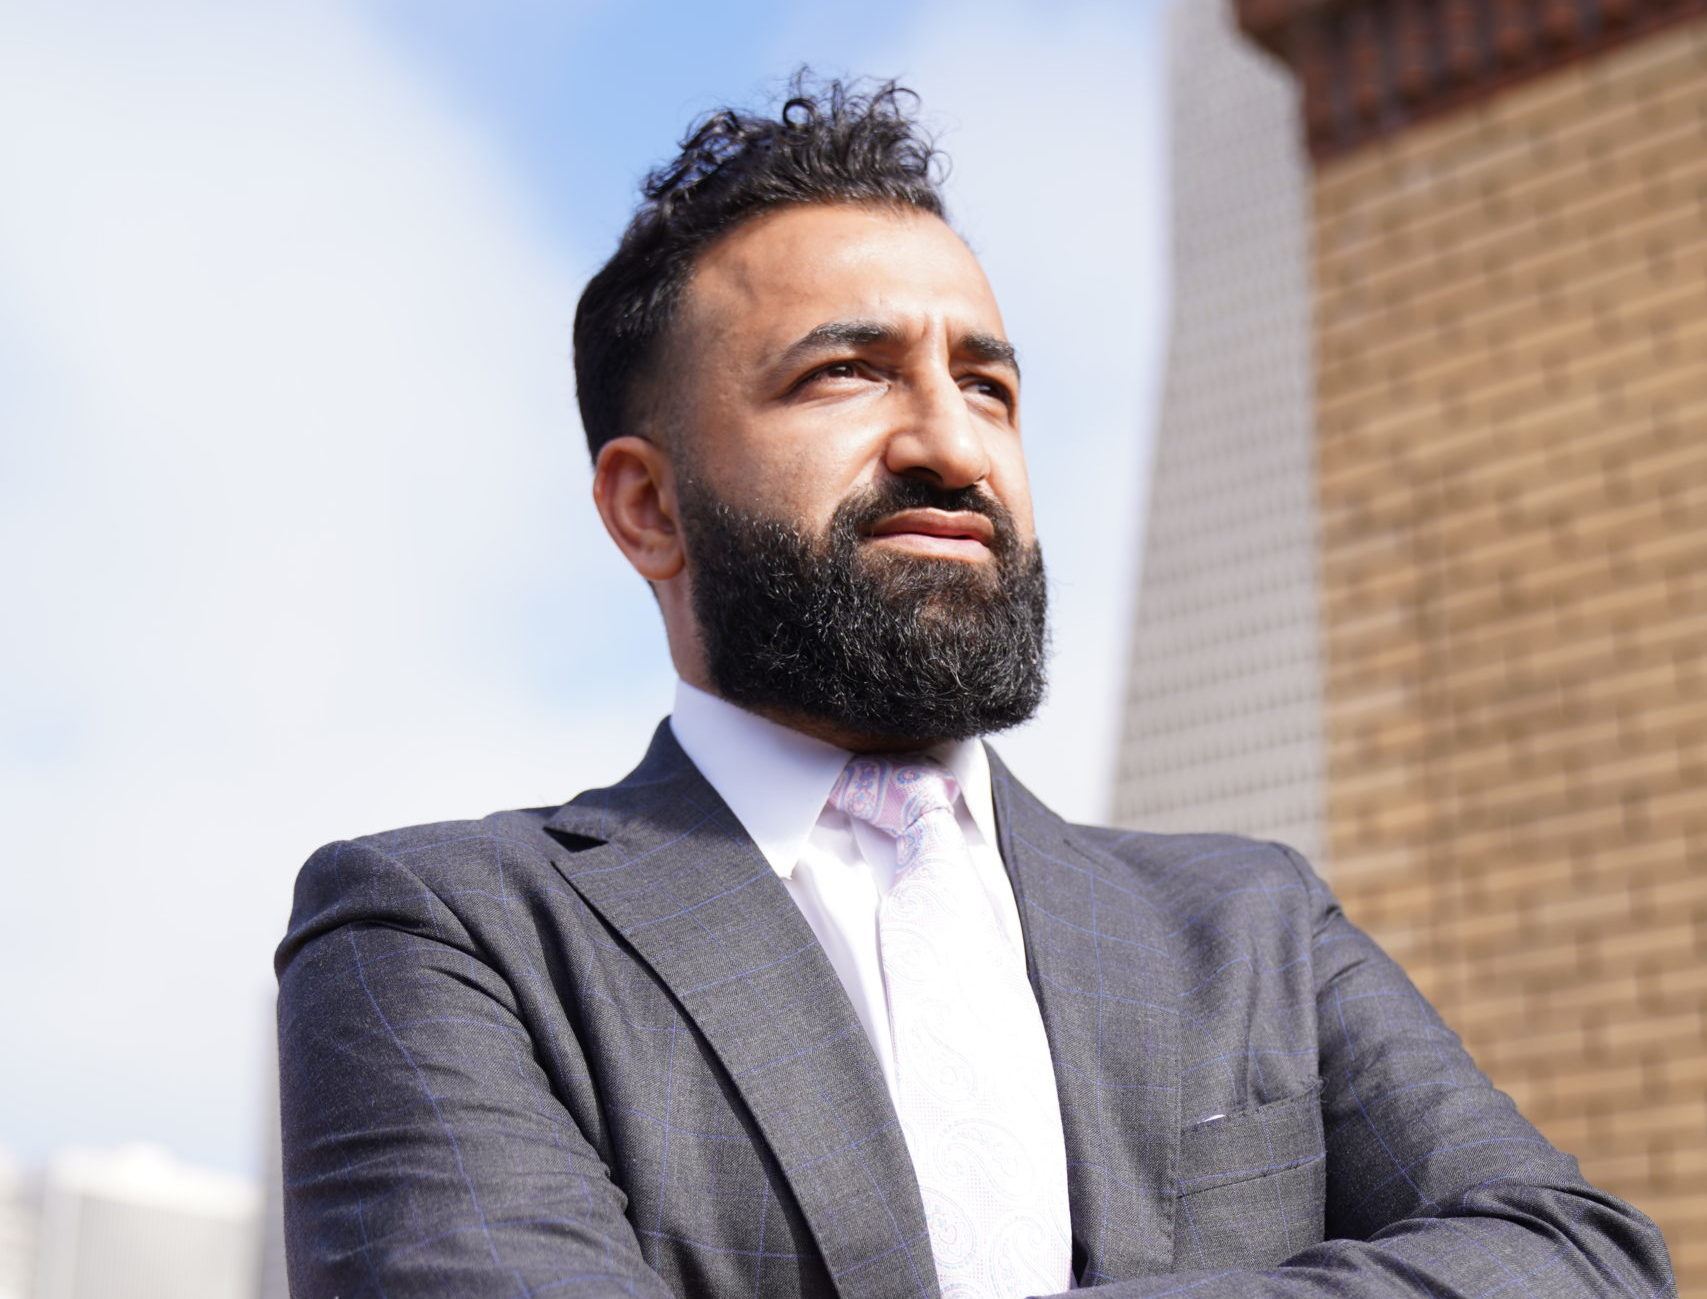 Haitham Amin is the principal attorney of Amin Law, where he practices criminal defense and personal injury law, with an emphasis on auto accidents.